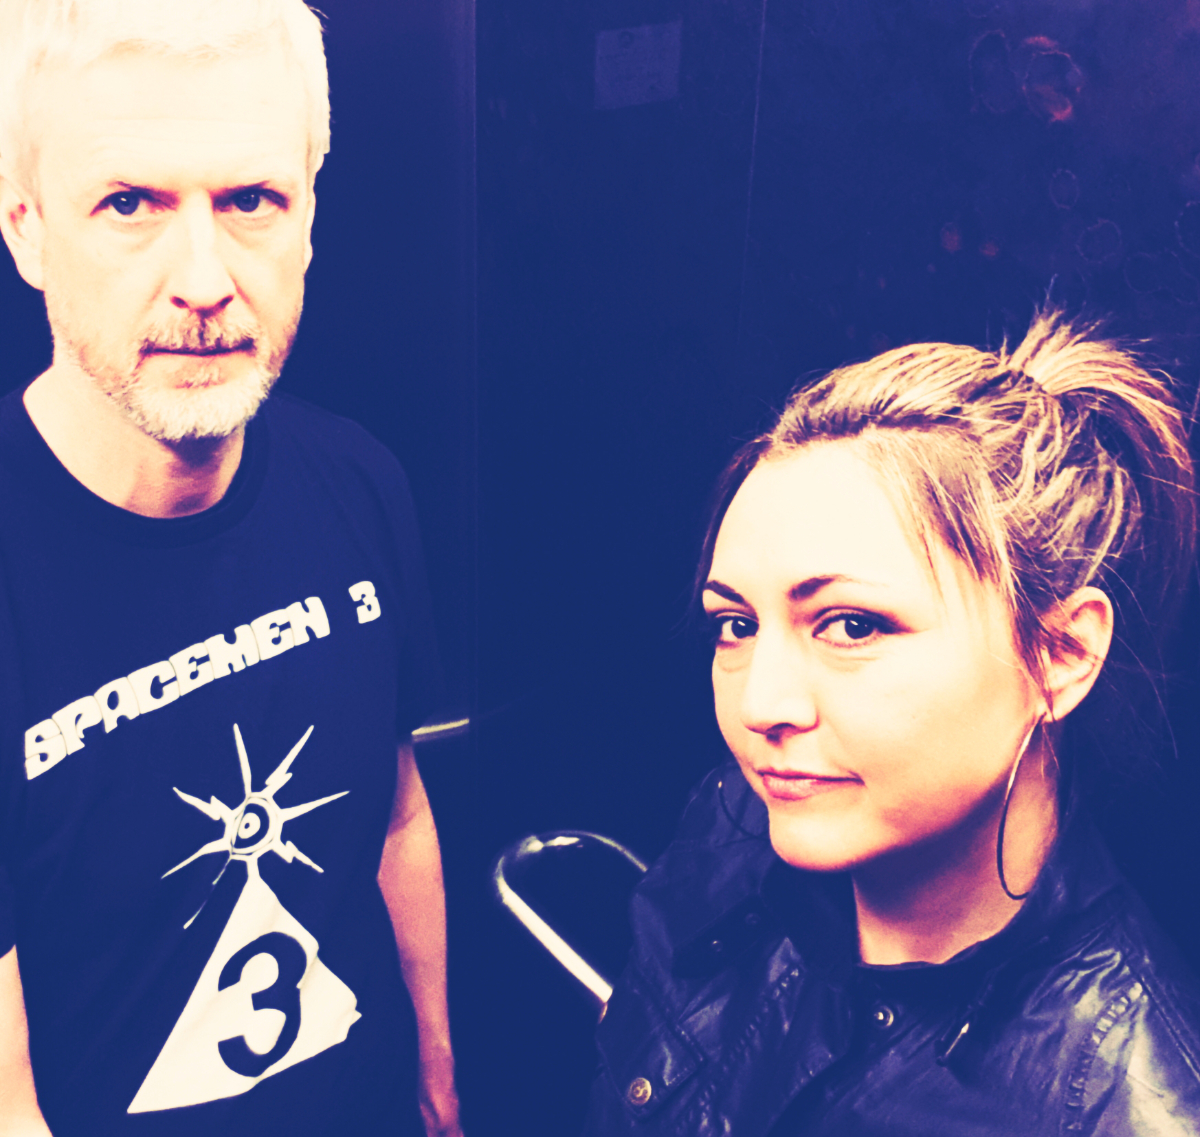 Mick and Daniela from Submotile